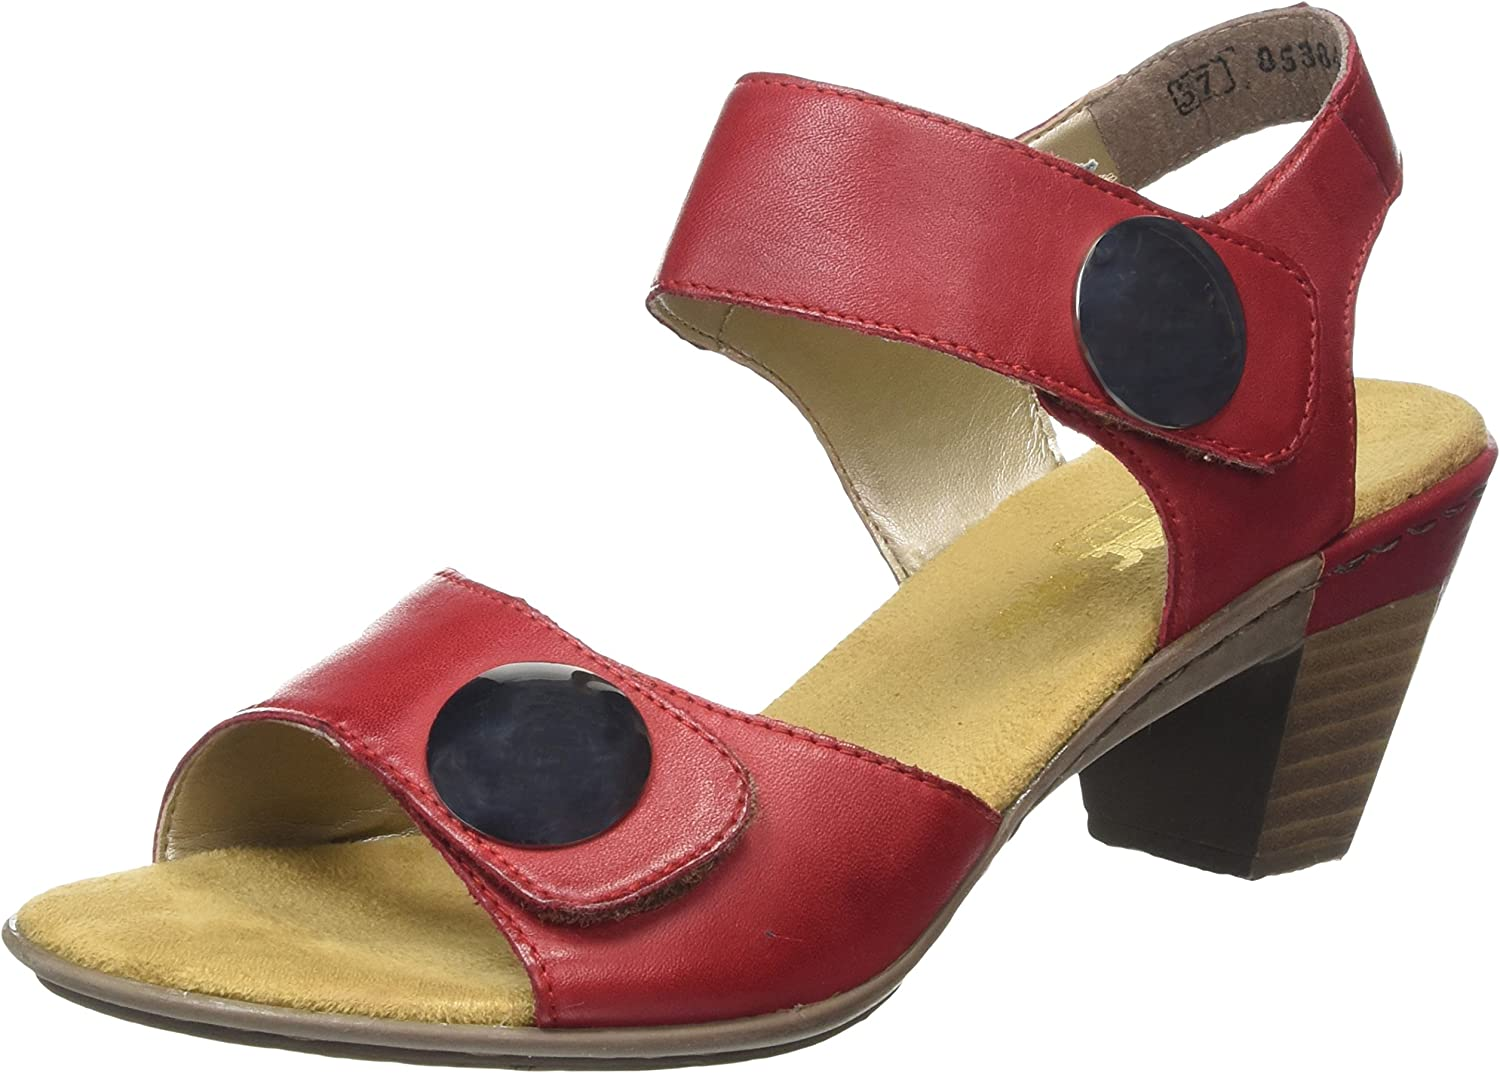 Rieker 67369-33 red (Red) Womens Sandals